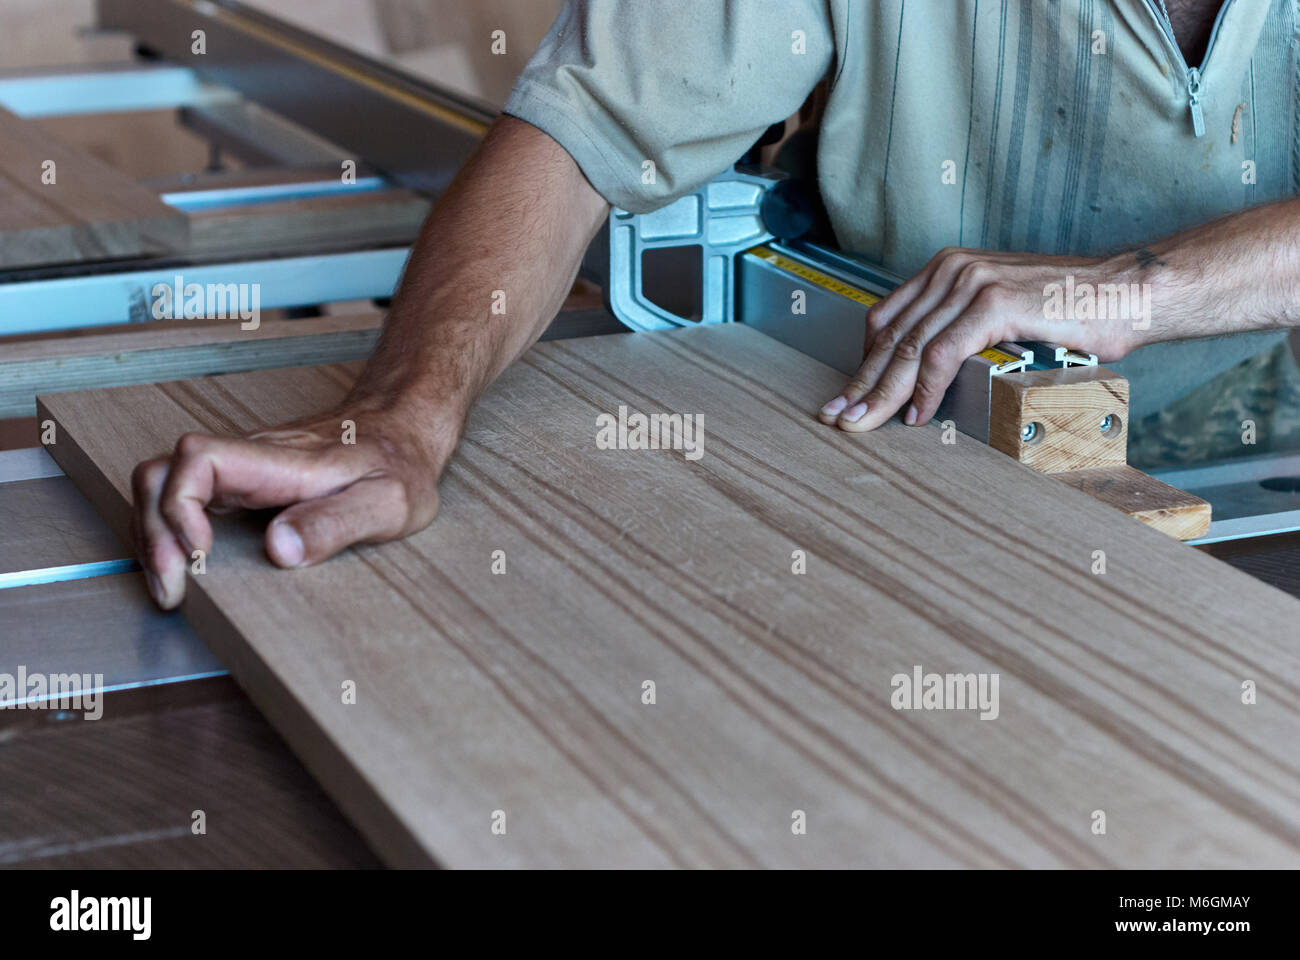 Panel squaring saw before sawing a thick edged oak board - Stock Image